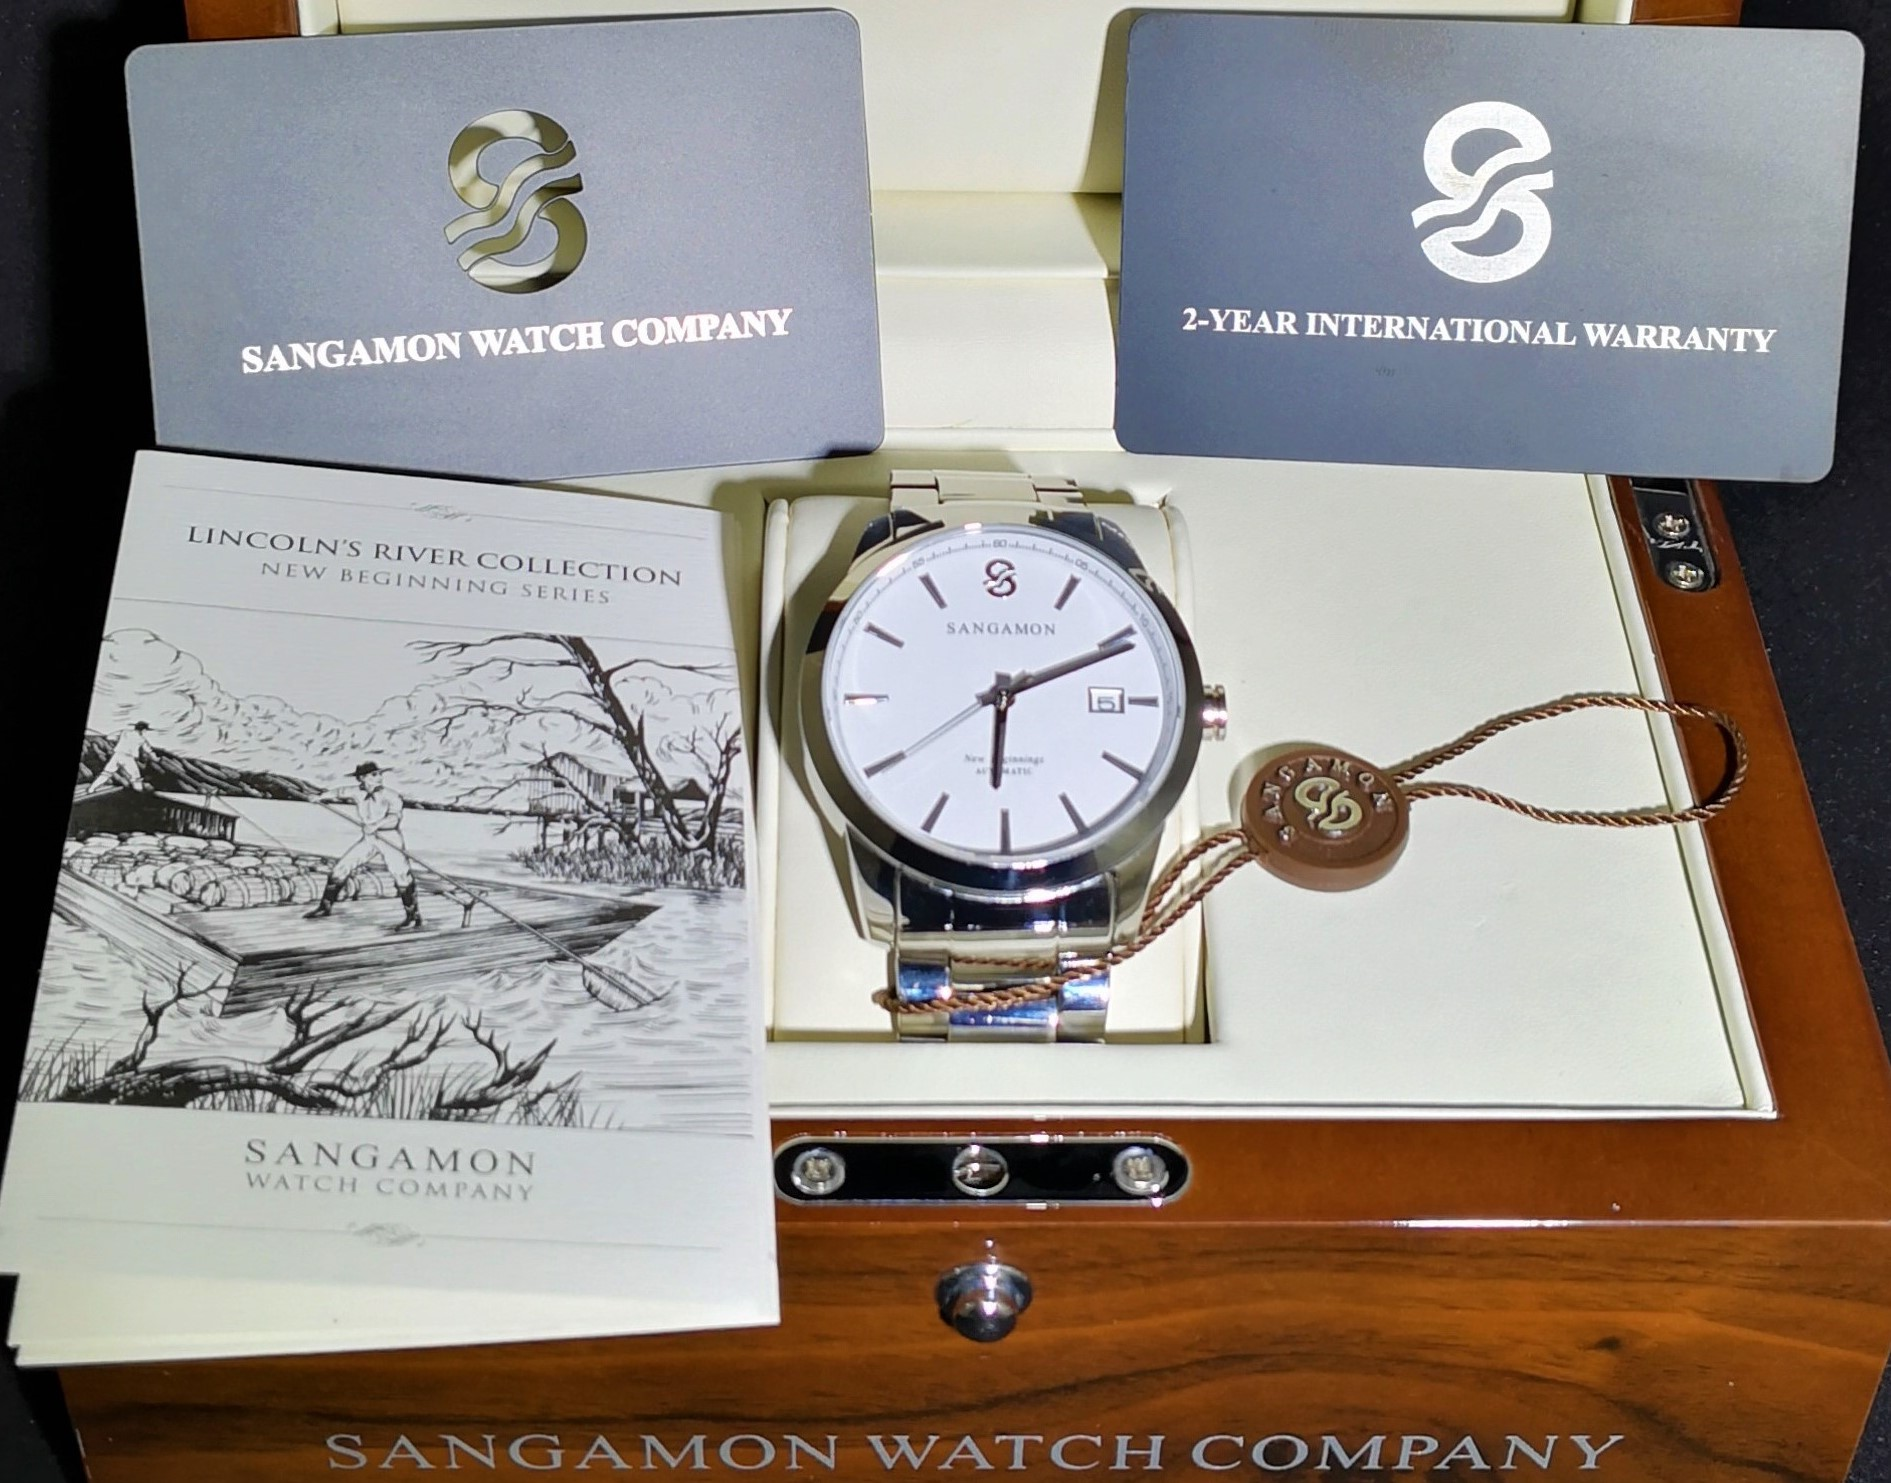 Sangamon Watch Company Announces the Launch of Their American Heritage Watches